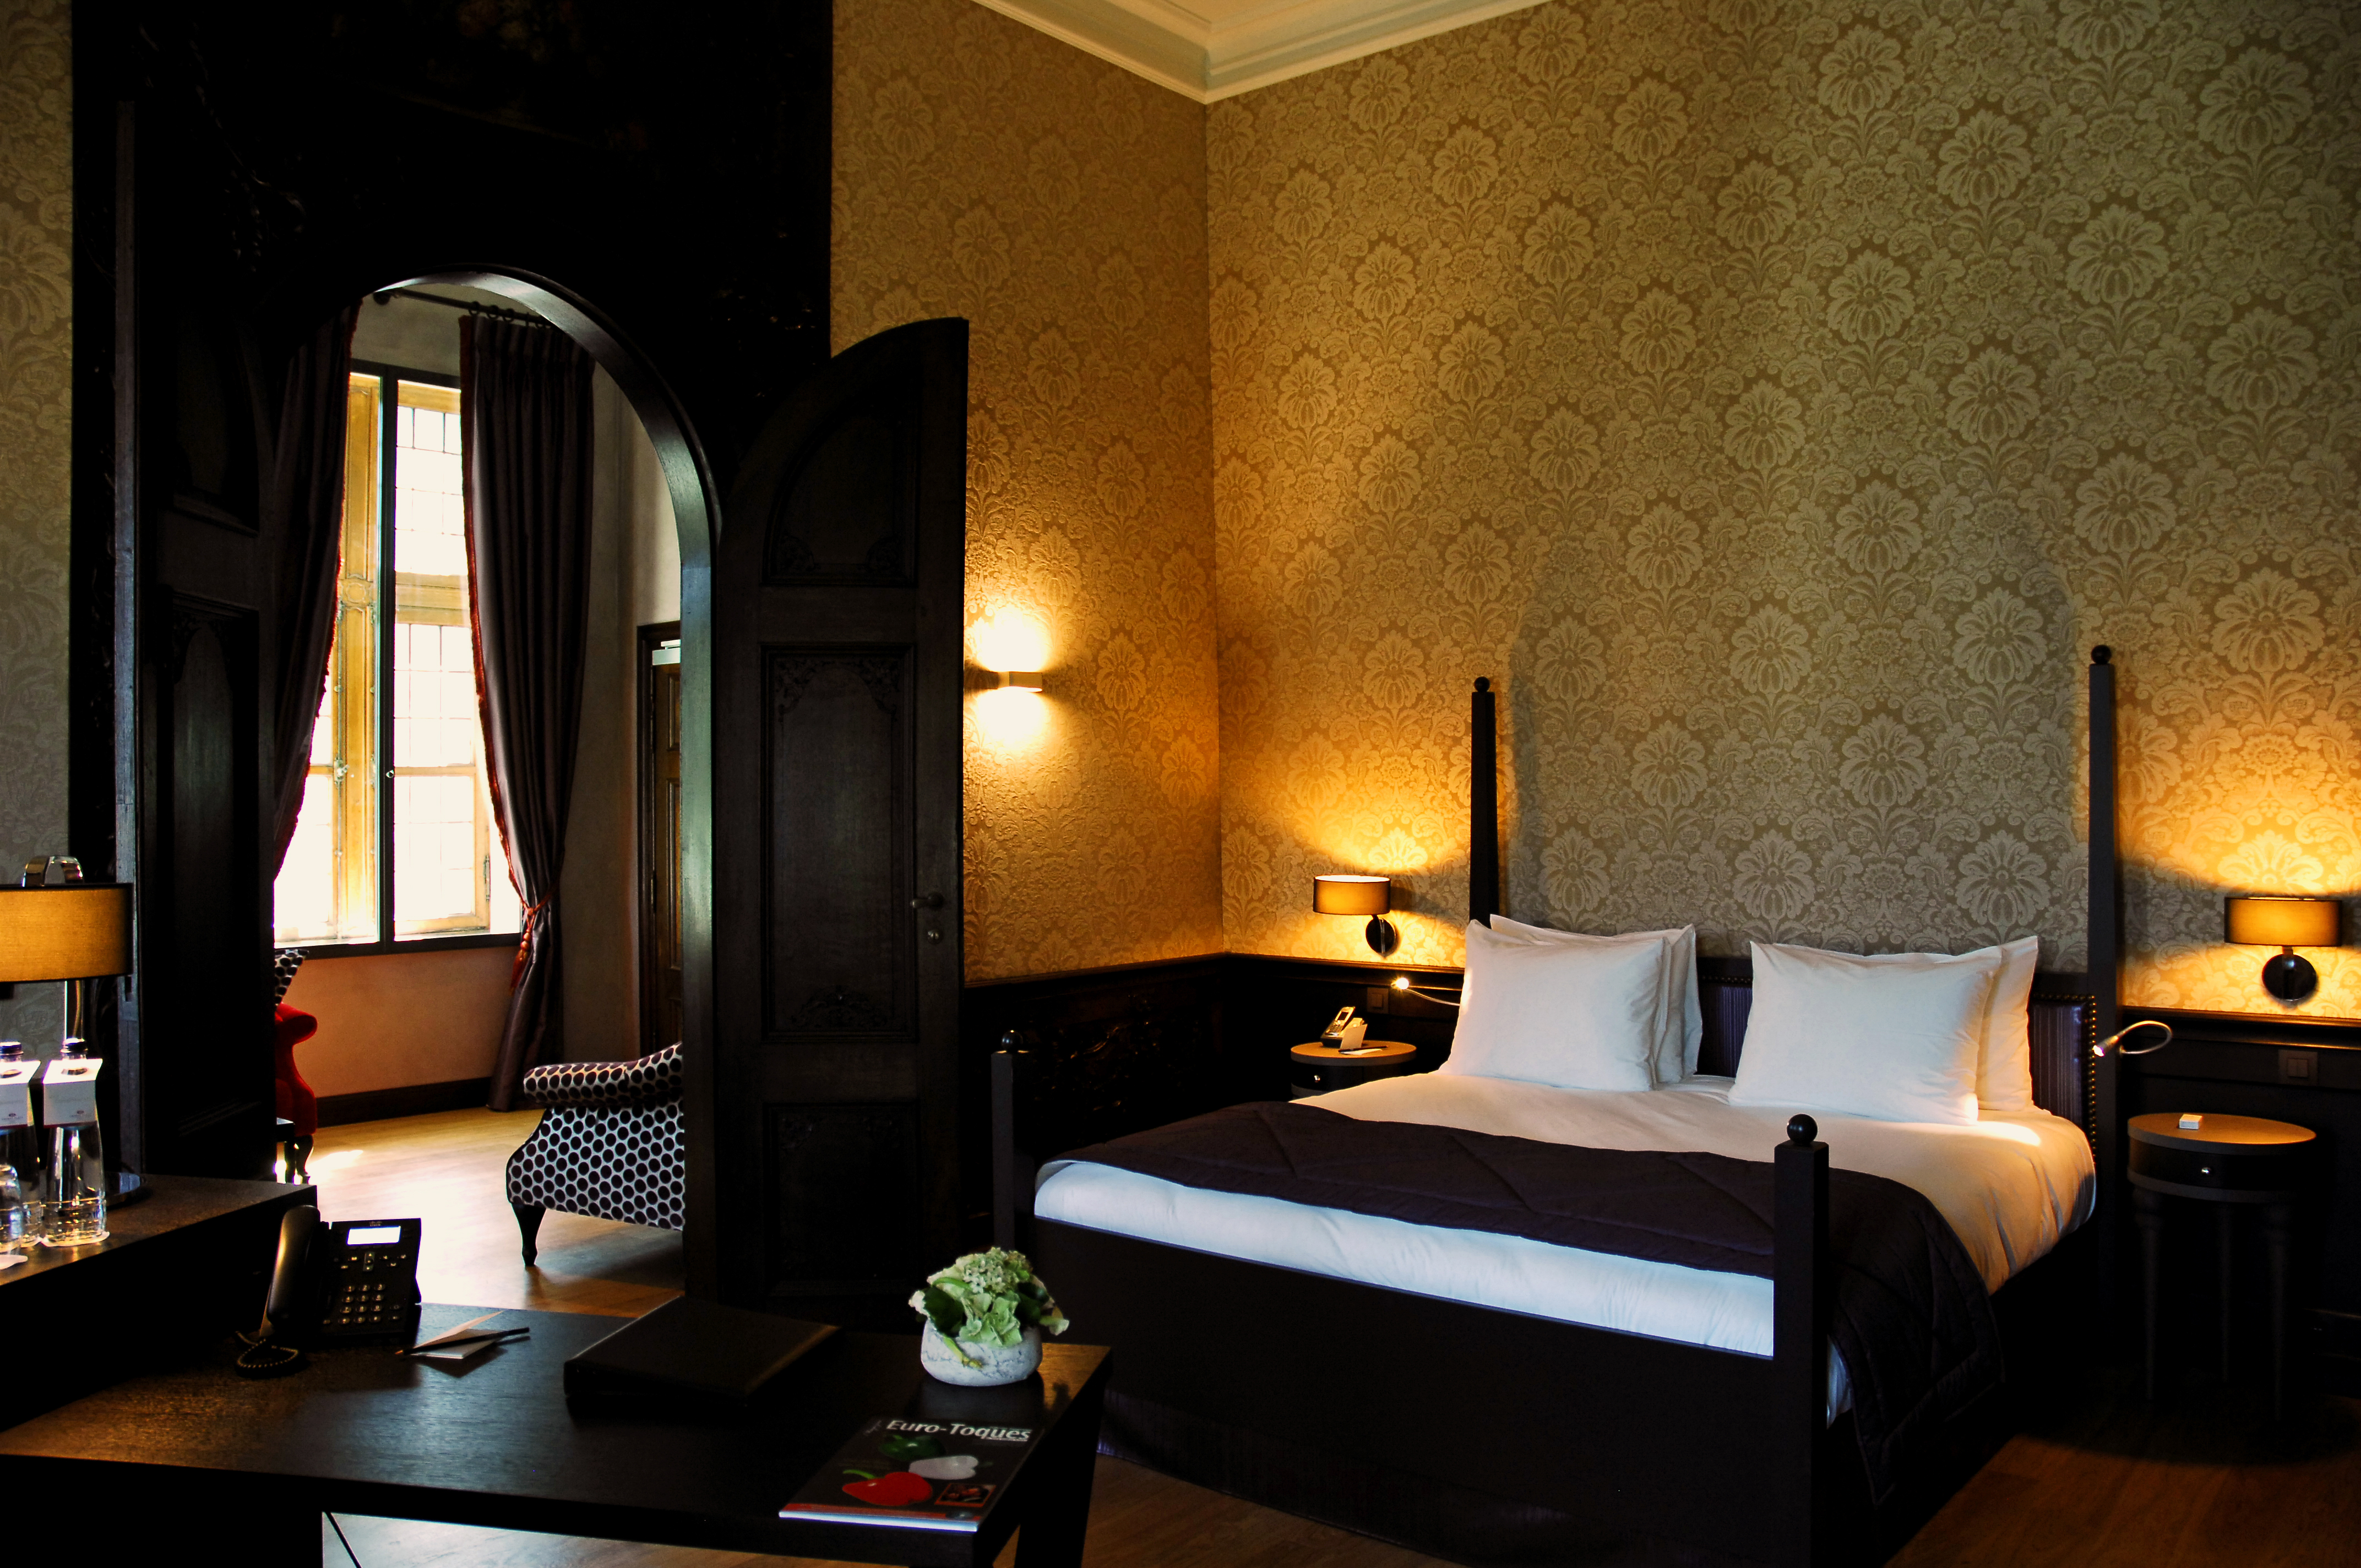 Historical Suite N° 12 in Van der Valk